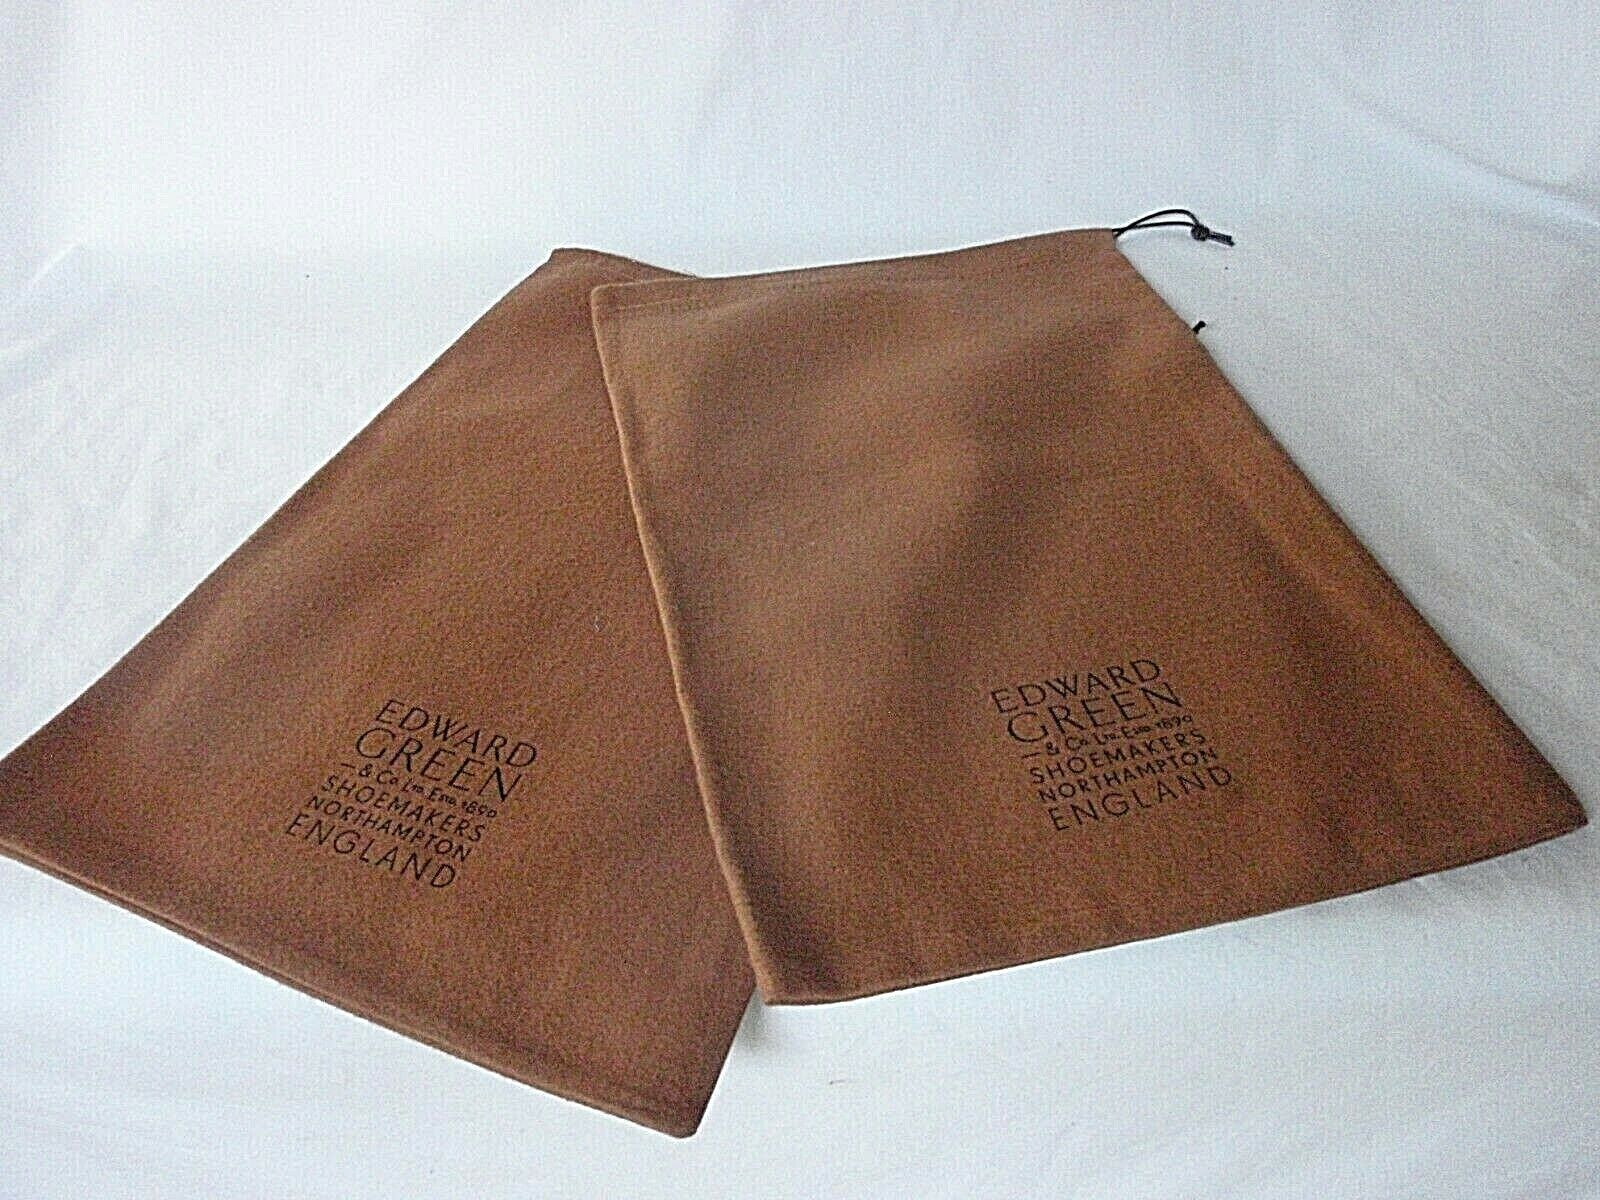 NEW. EDWARD GREEN Shoemaker Brown Cotton Boot Dustbags Sleeper Bags. 1 pair